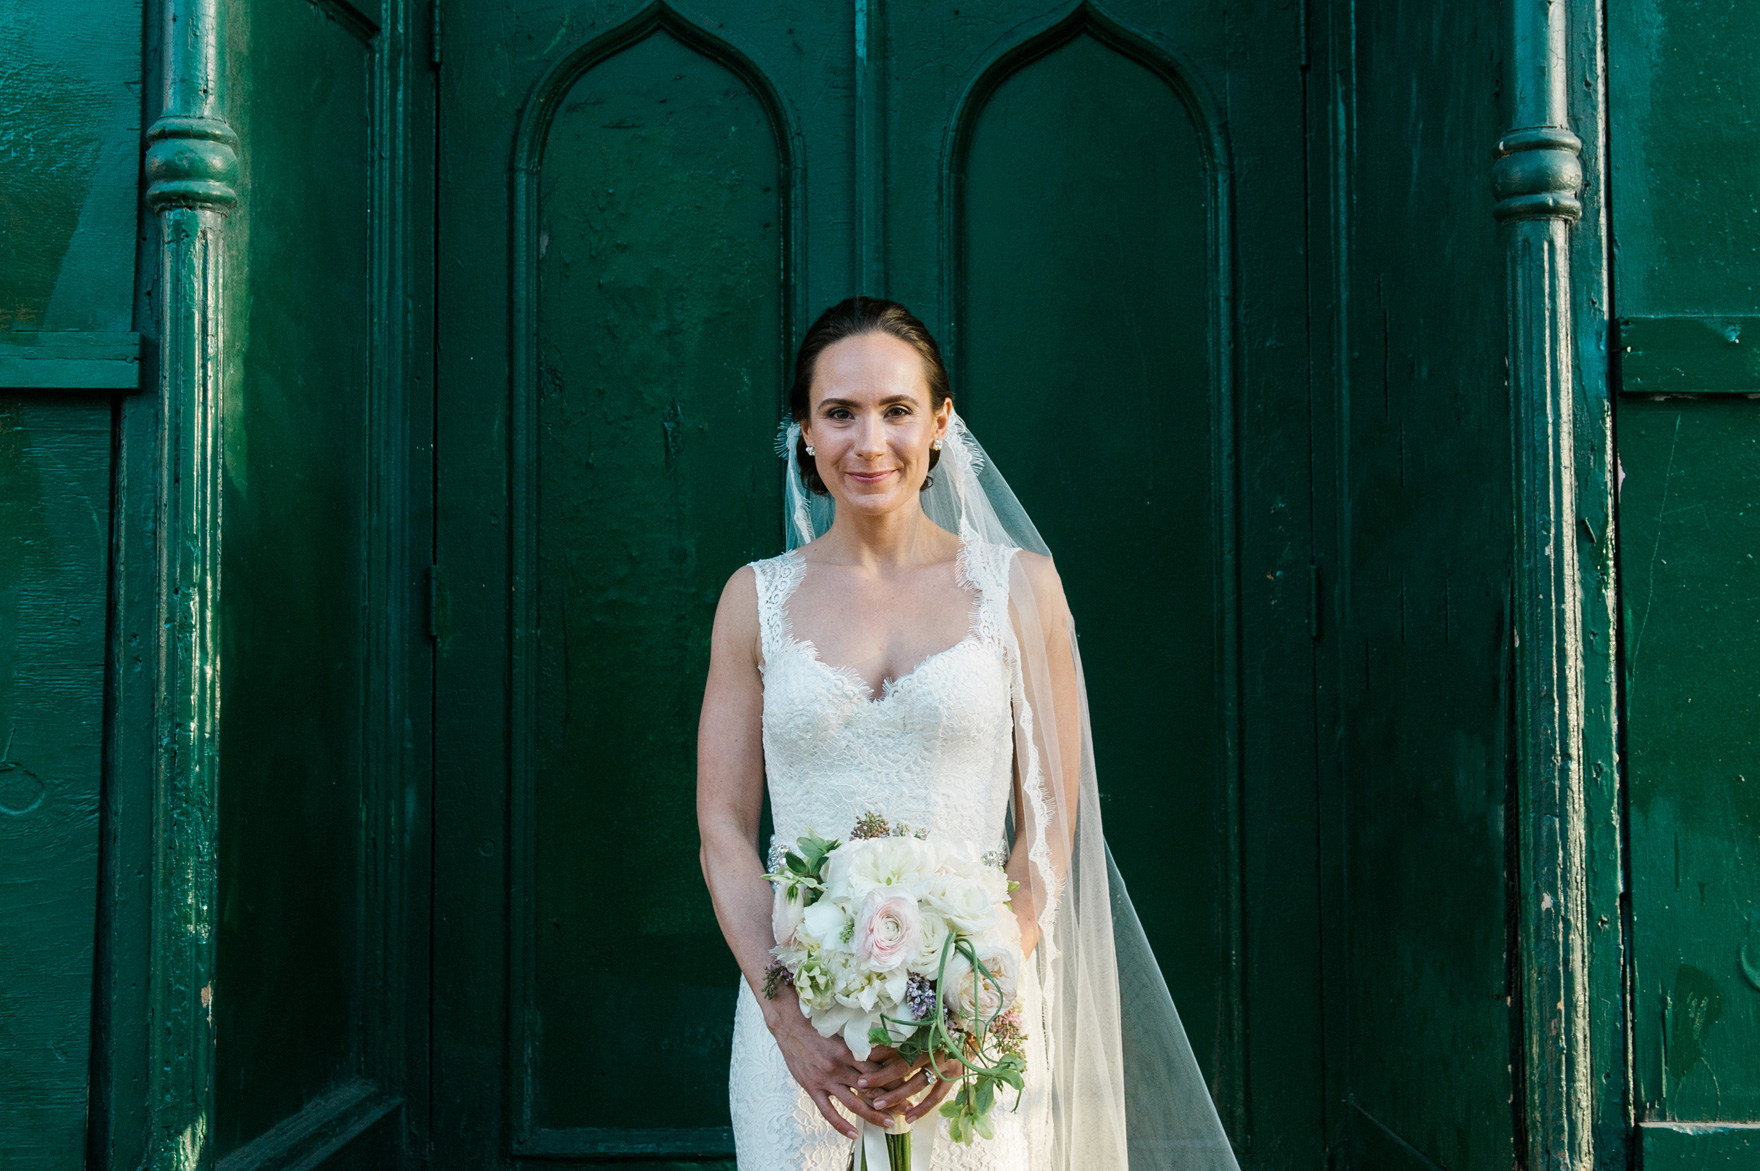 Williamsburg New York Fine Art Wedding by Christina Lilly Photography052